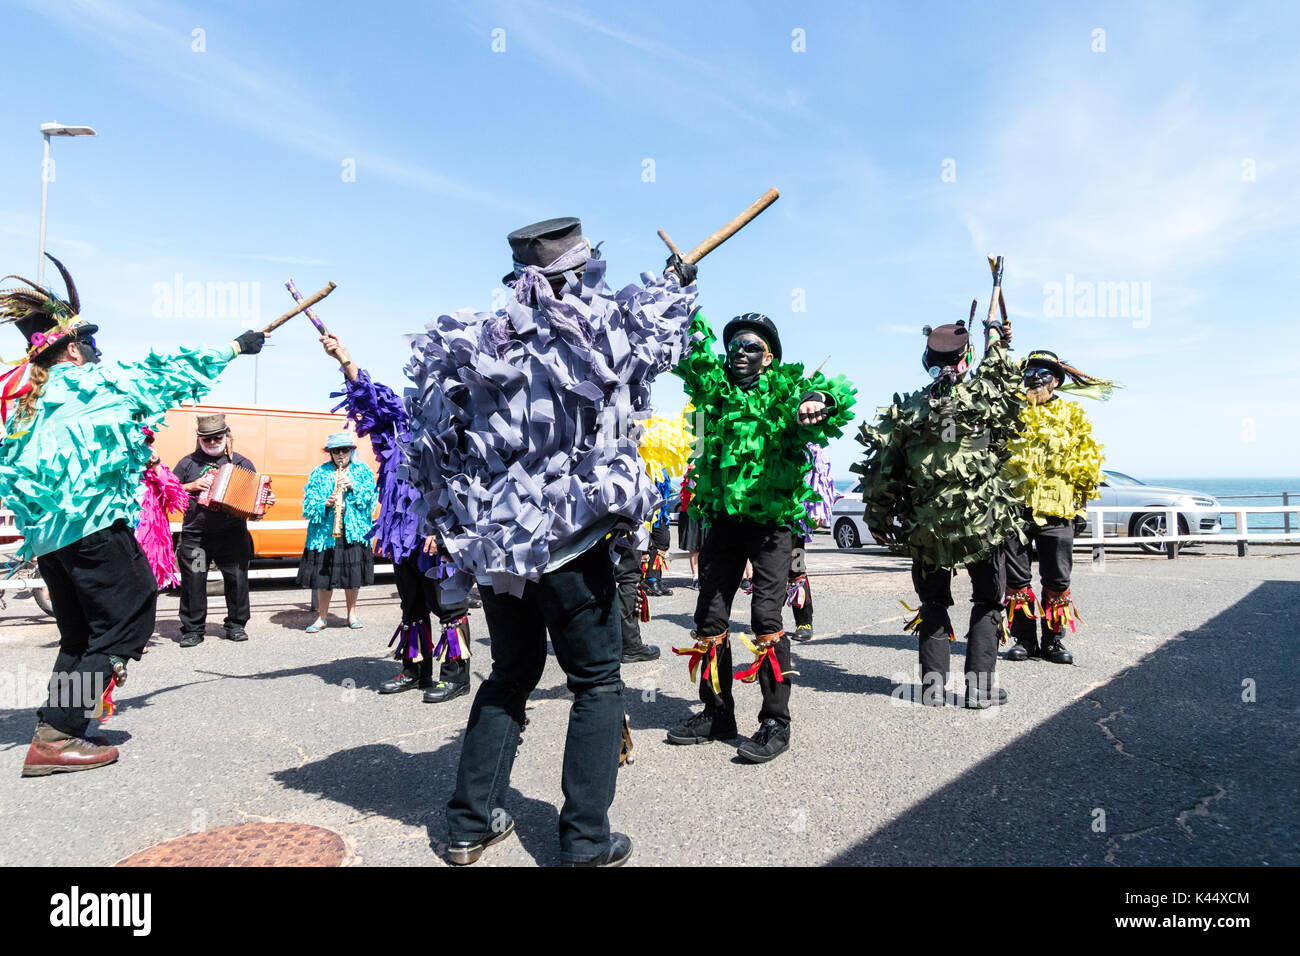 Traditional morris men wearing top hats and tatter jackets in various colours dancing holding wooden poles on Broadstairs sea front. Summertime. - Stock Image